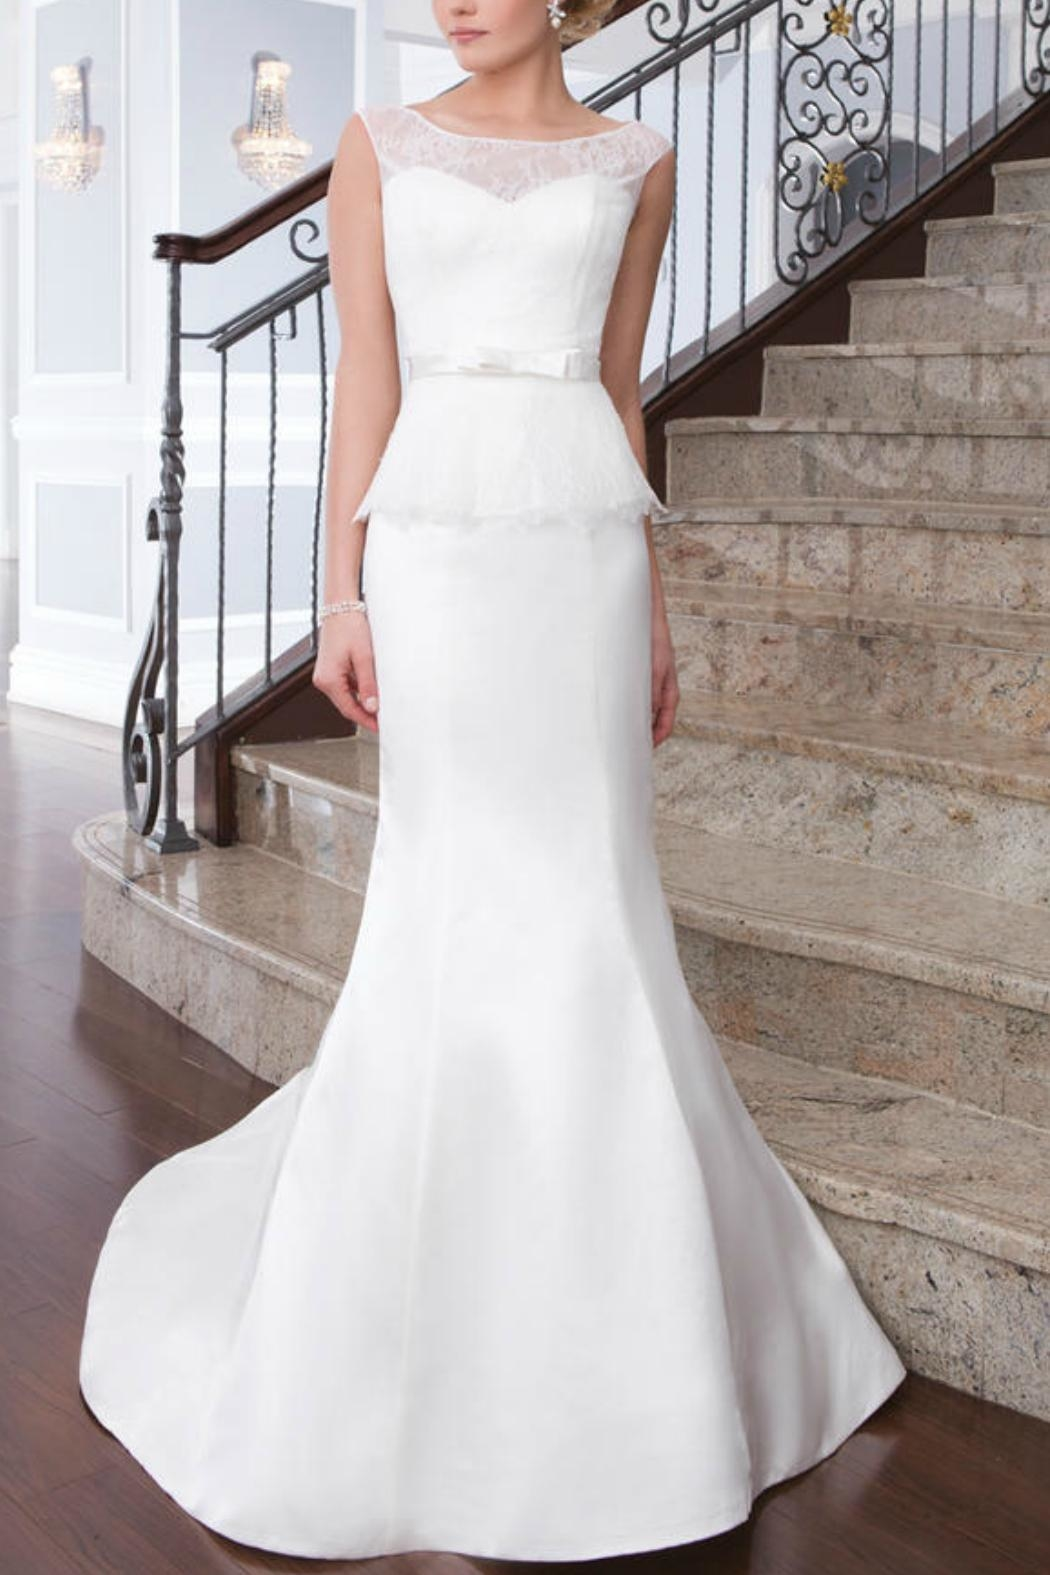 Justin Alexander Satin Mermaid Gown from Pennsylvania by L & H ...